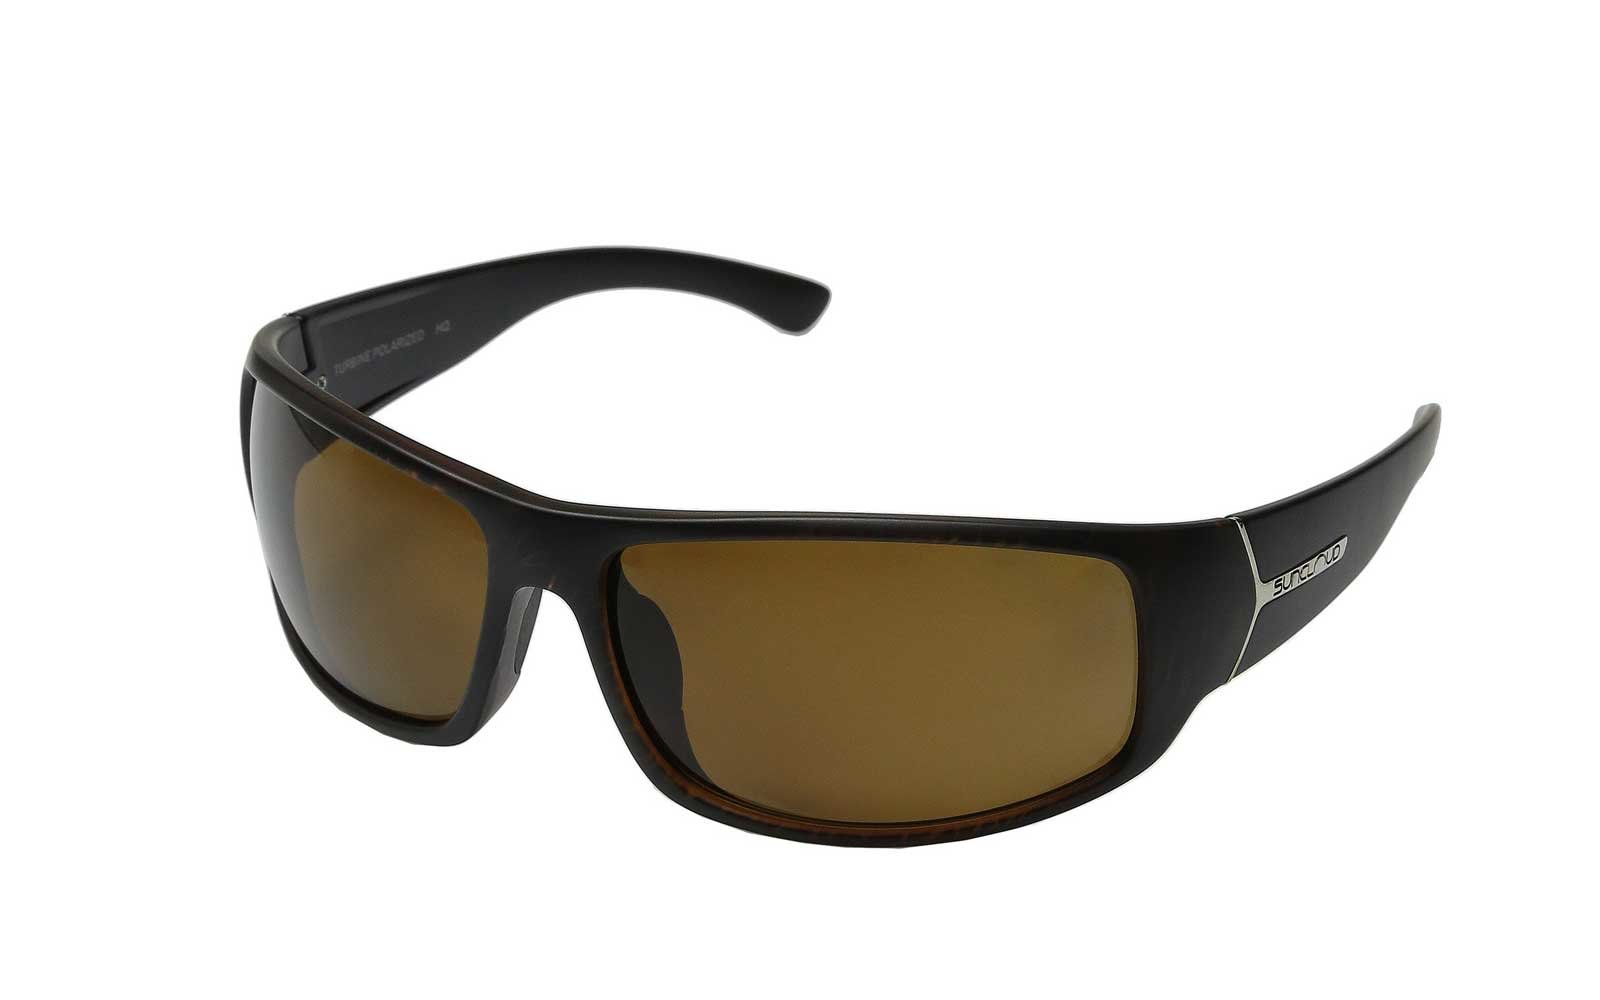 SunCloud Polarized Optics 'Turbine' Sunglasses